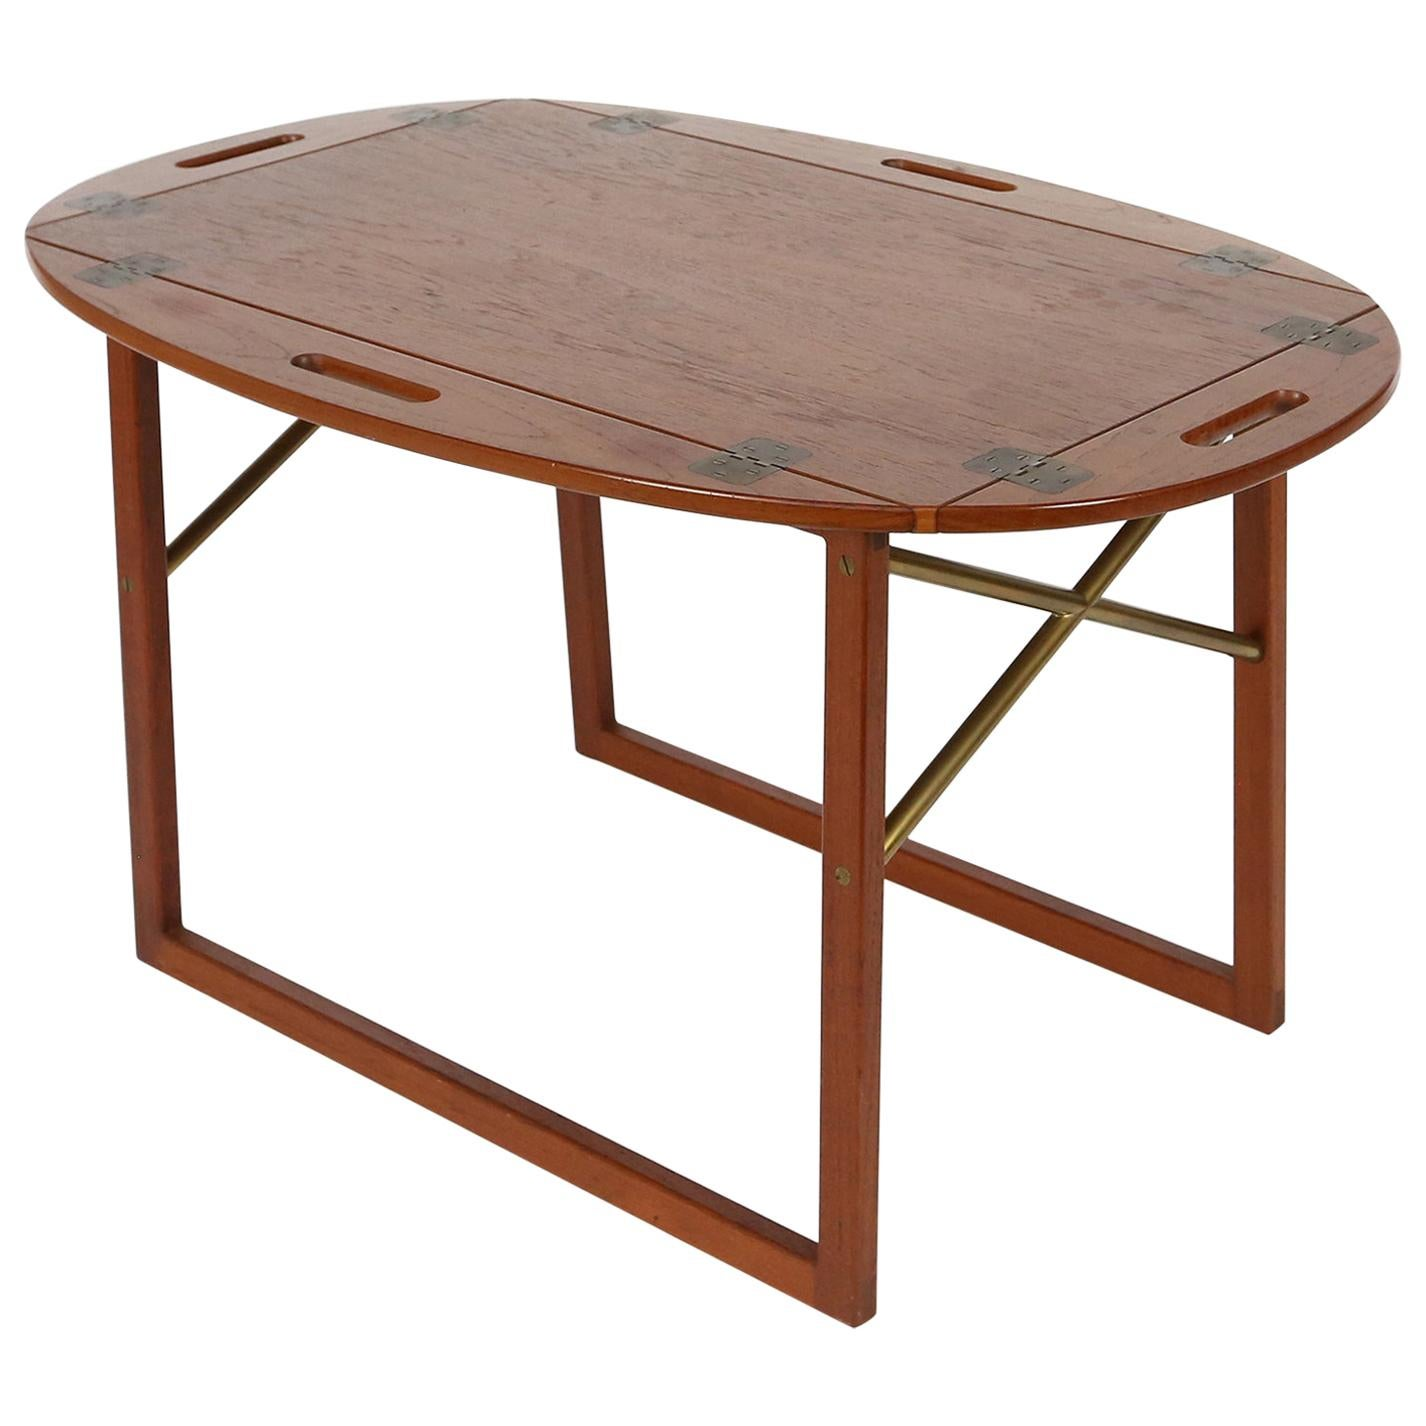 Side Table or Butlers Tray by Svend Langkilde for Illums Bolighus, Denmark